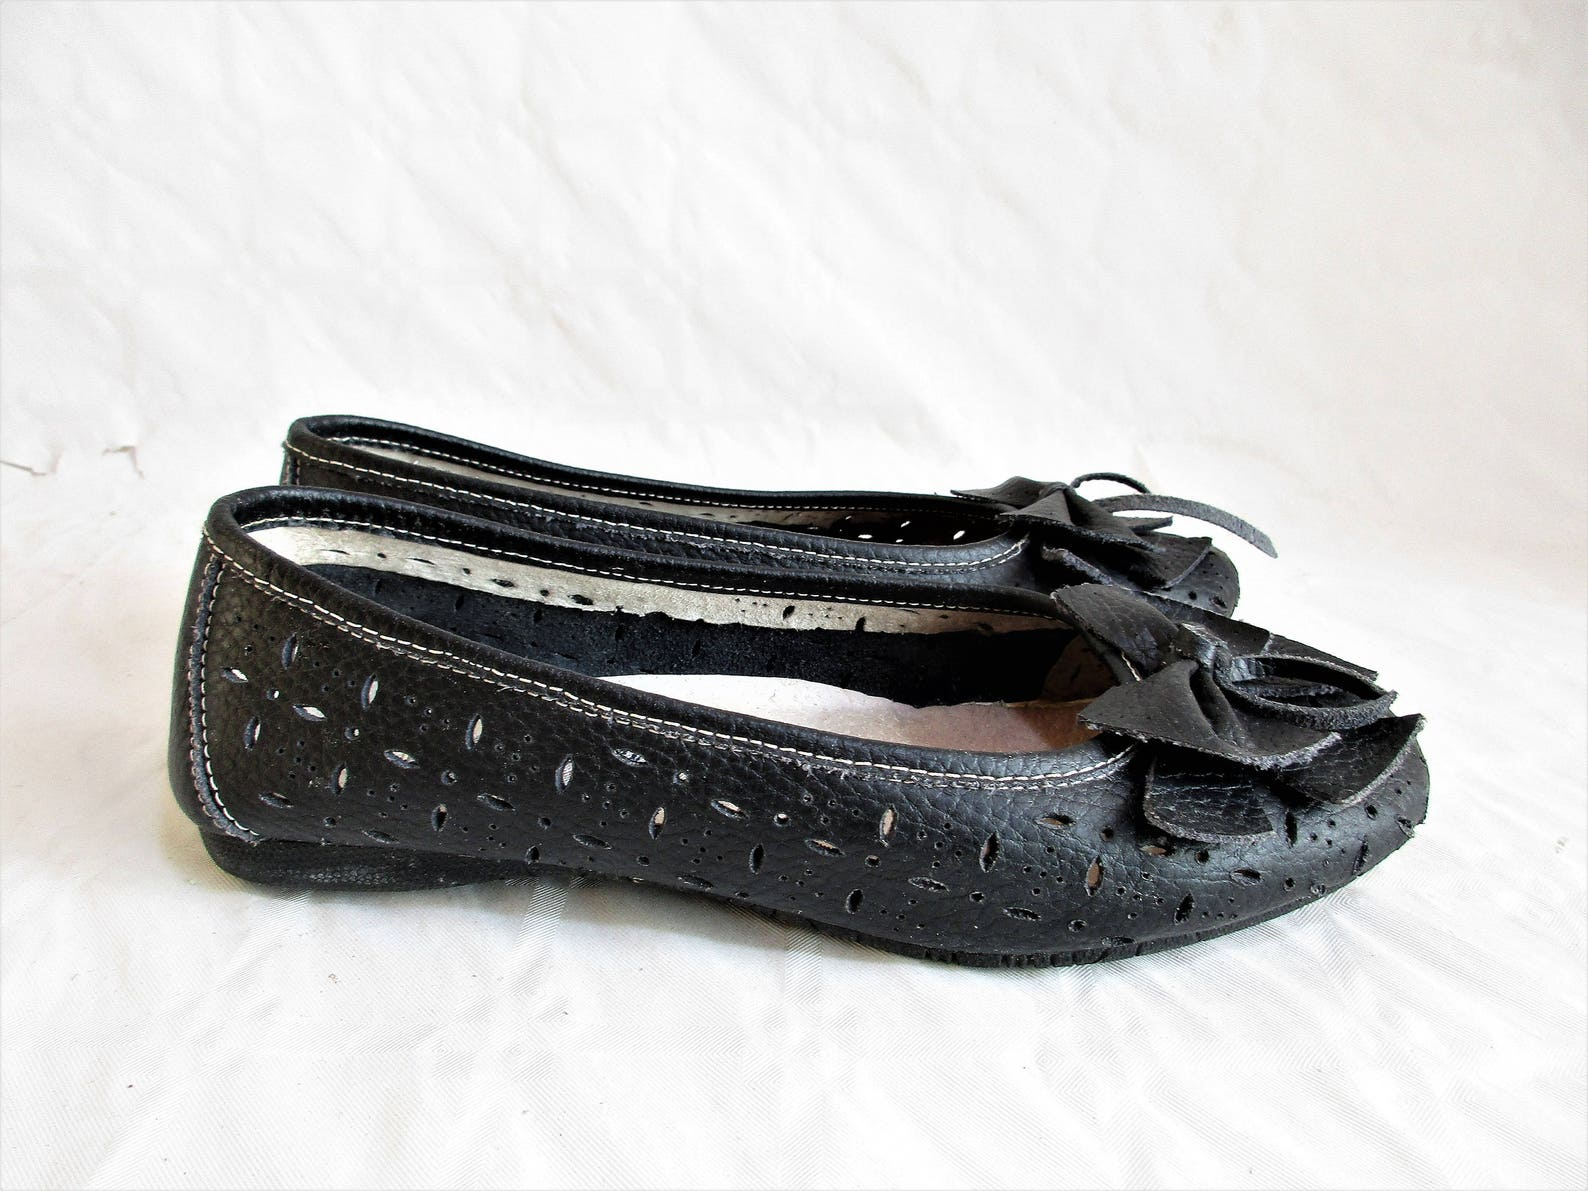 vintage italian perforated charcoal leather ballet flats with ribbon embellishment , size : eu 37 / us women's 6 1/2